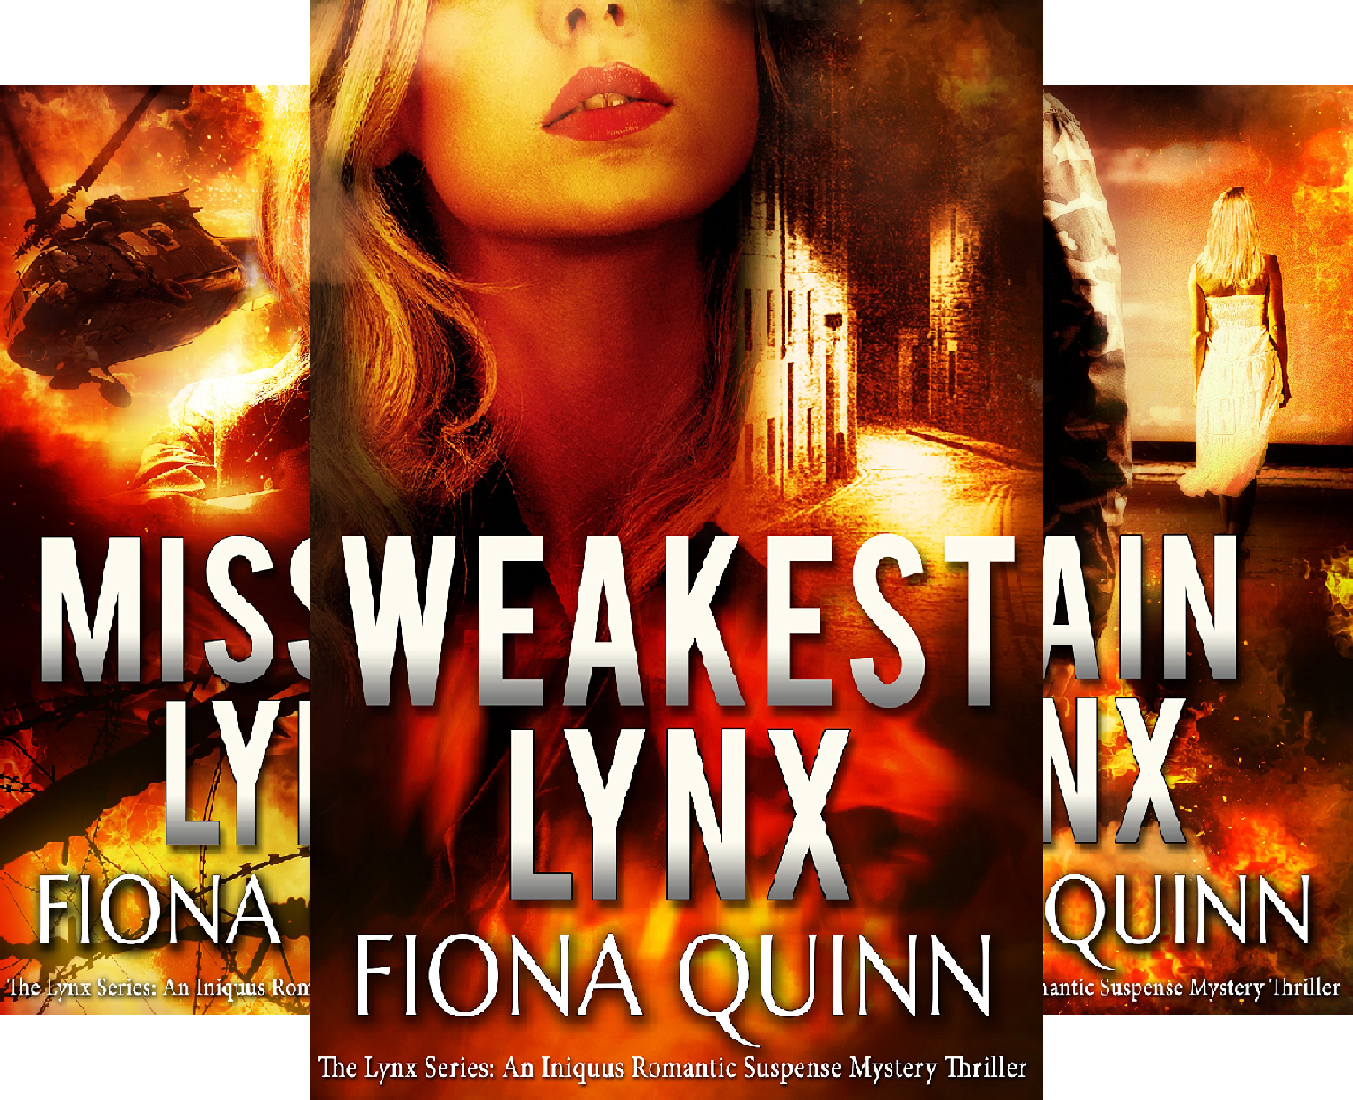 Top 1 best fiona quinn lynx series: Which is the best one in 2019?